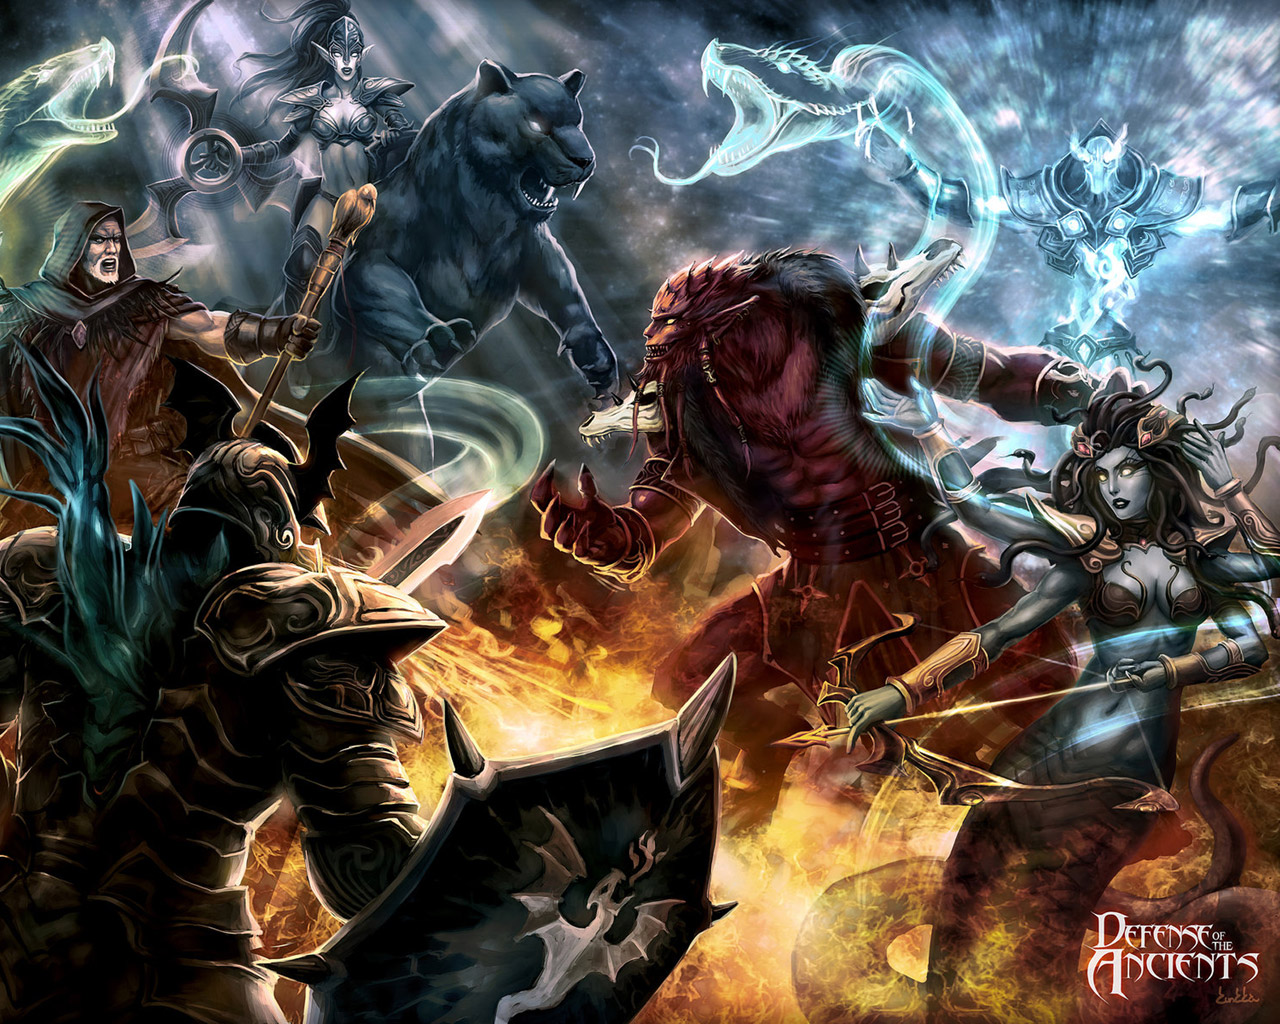 Free DotA: Defense of the Ancients Wallpaper in 1280x1024